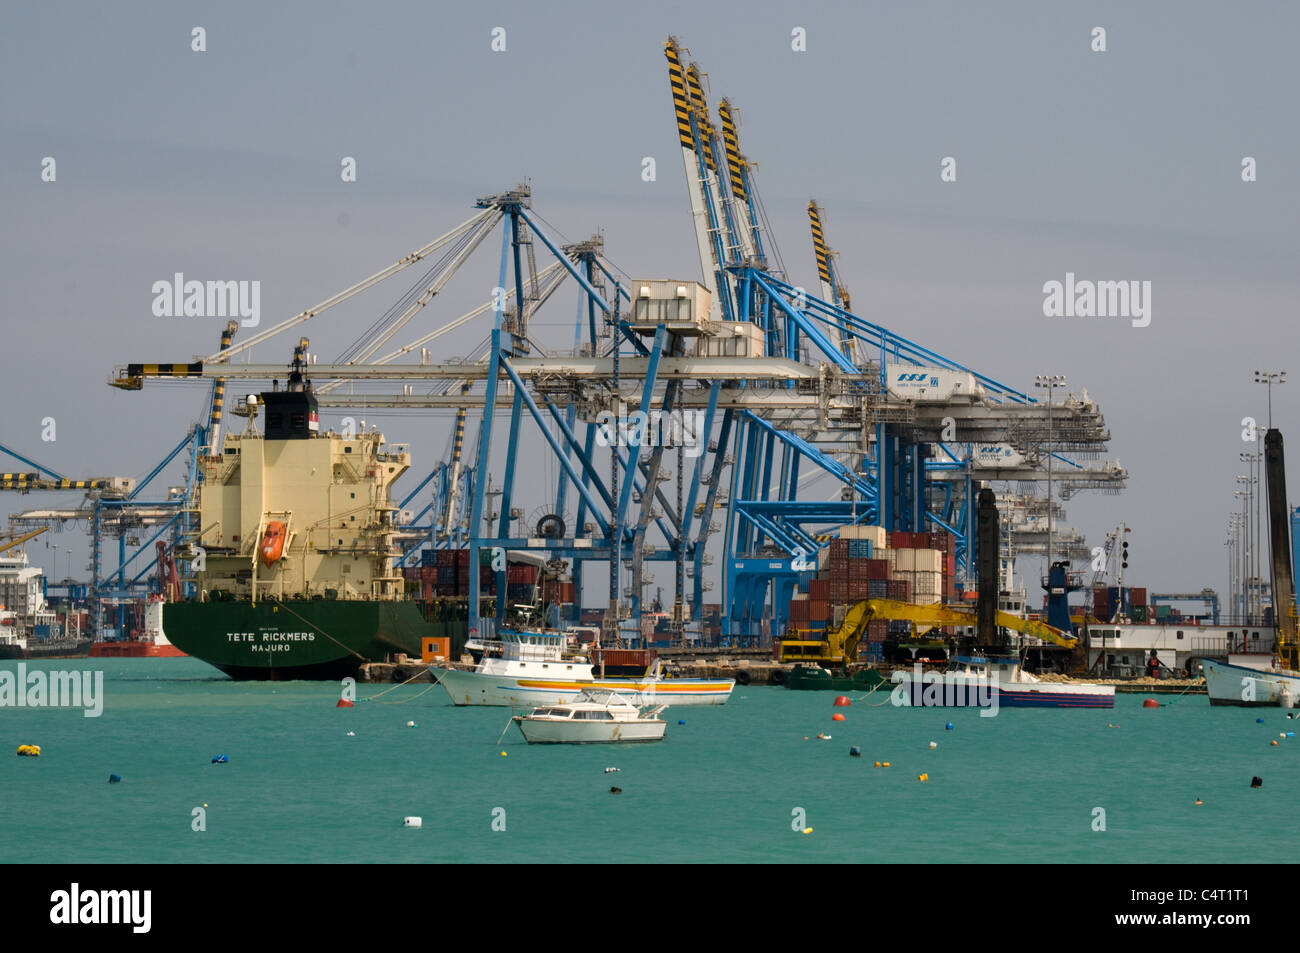 The container ship Tete Rickmers is docked at freeport, Malta to load and load its containers - Stock Image